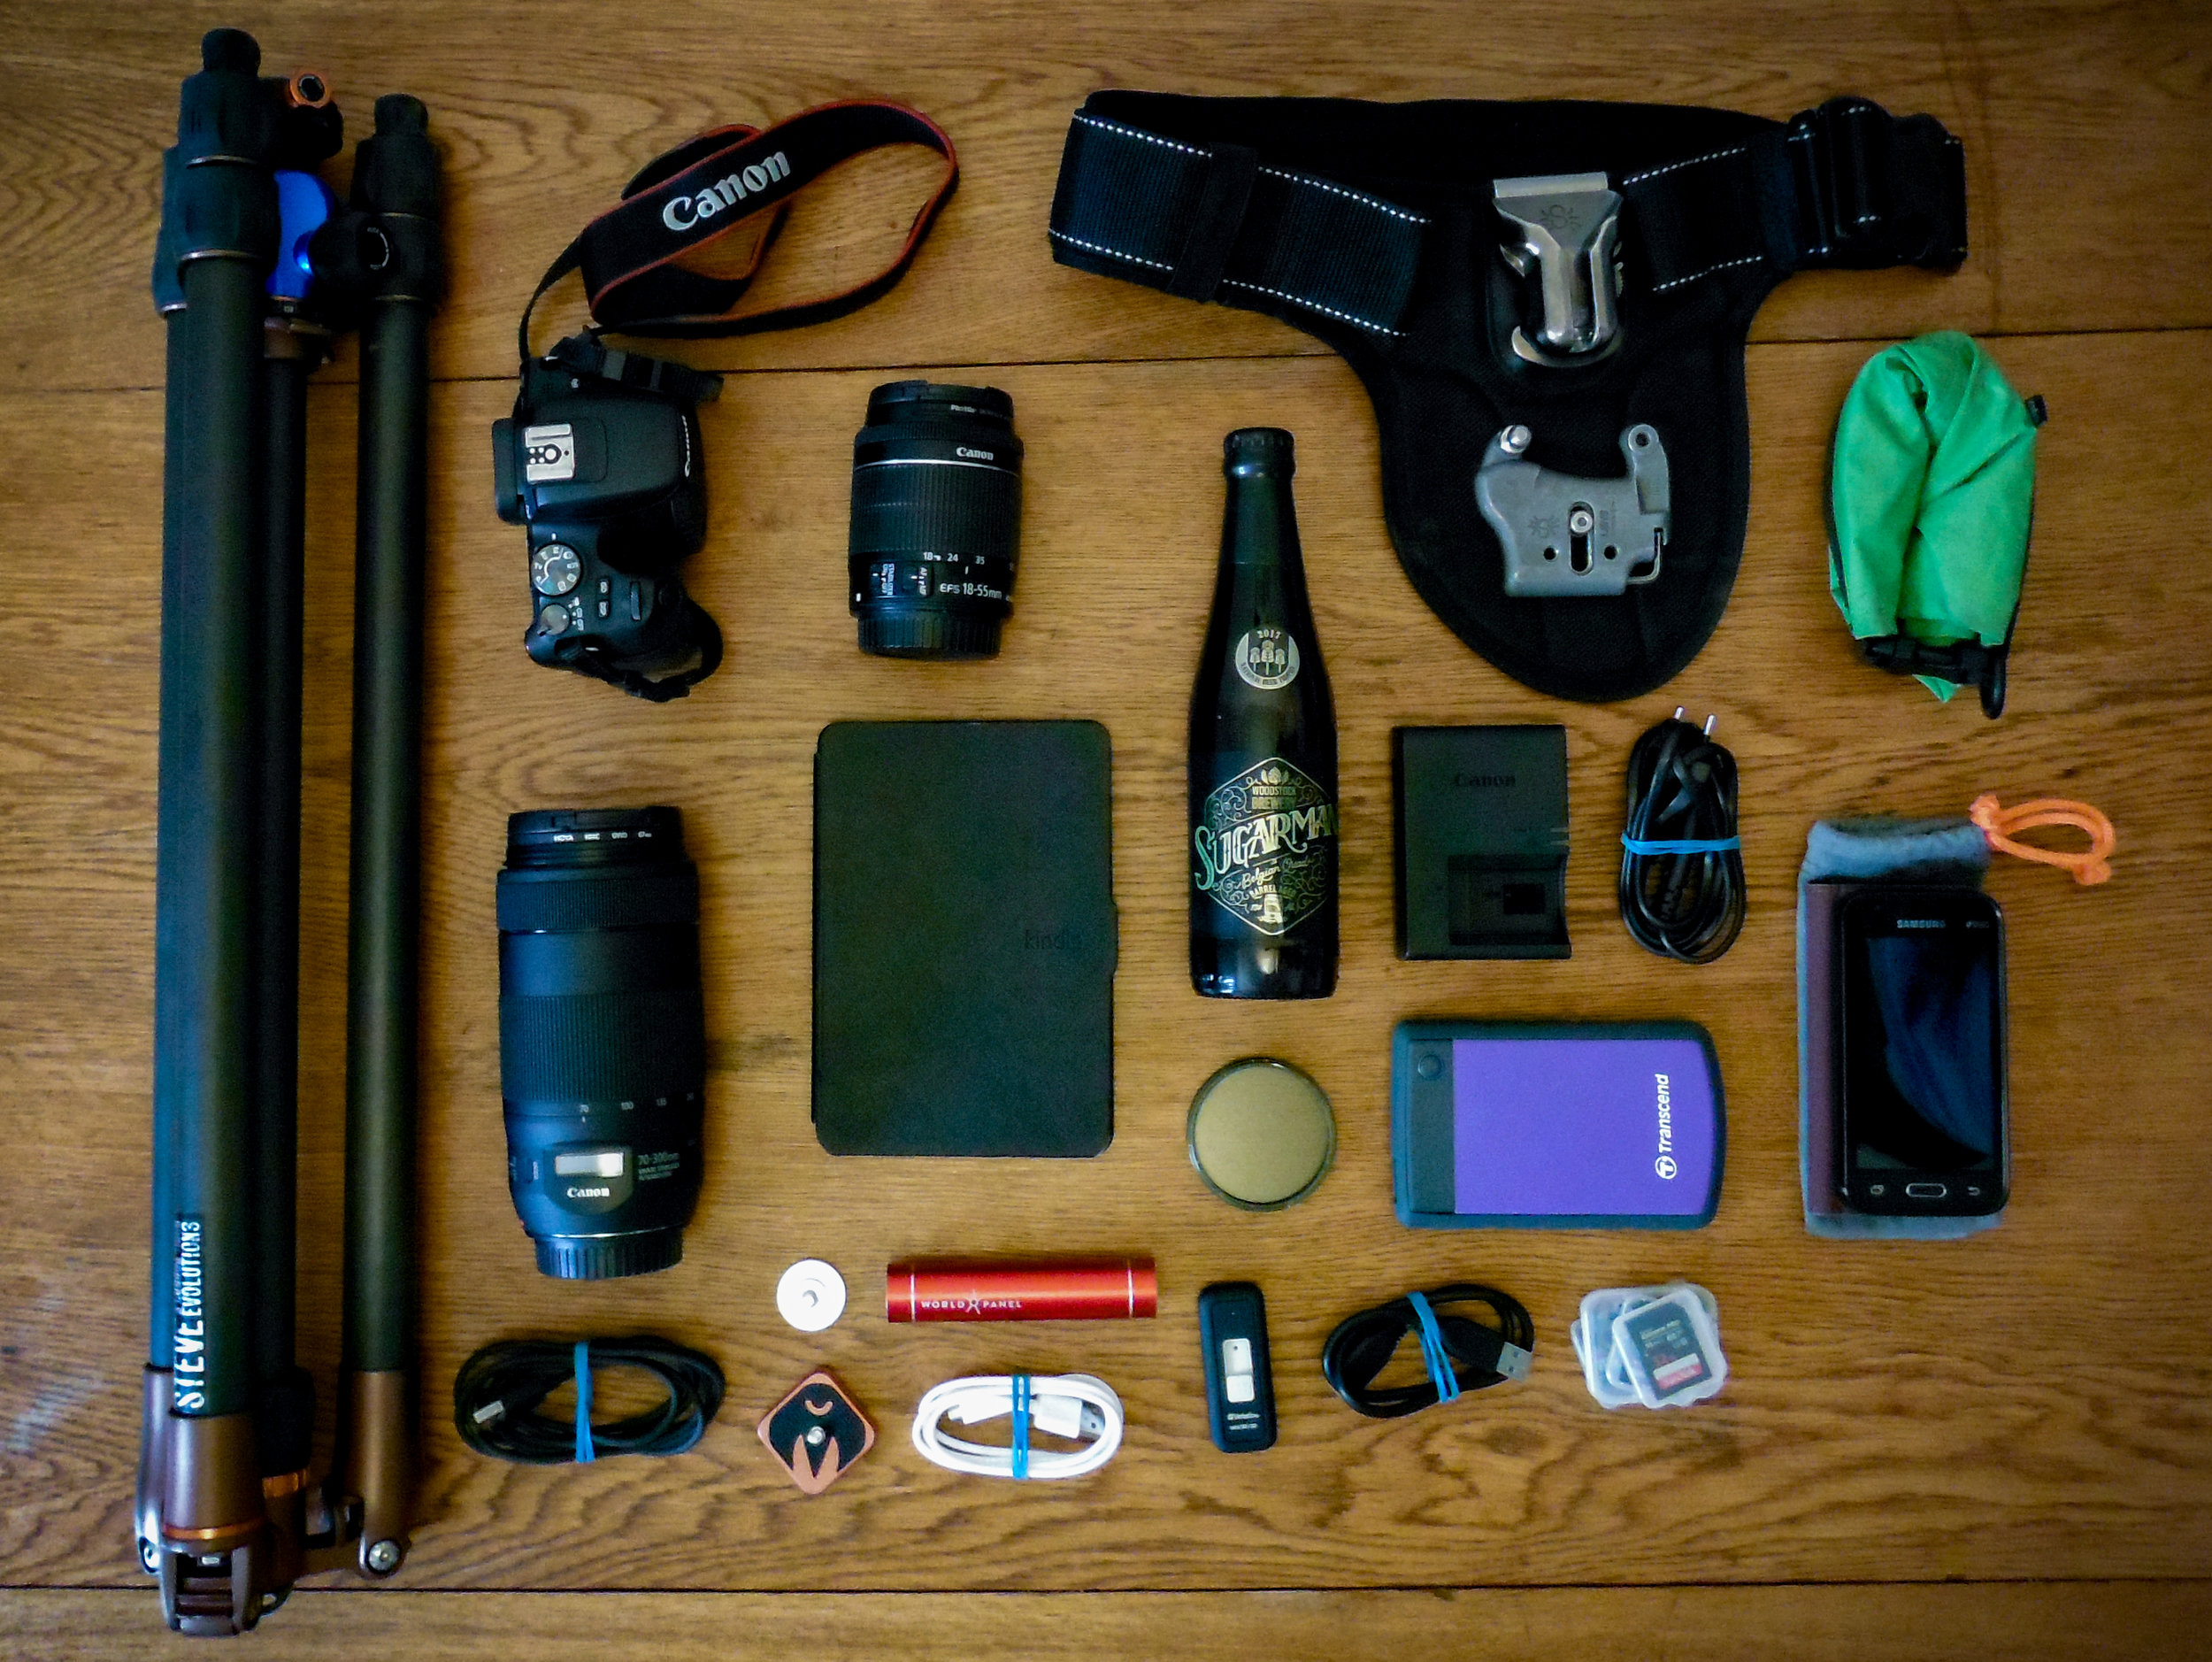 This was some of my gear used last year, and while some things have stayed, a lot has changed. Maybe I should do another one of these top-down photos of my current setup?